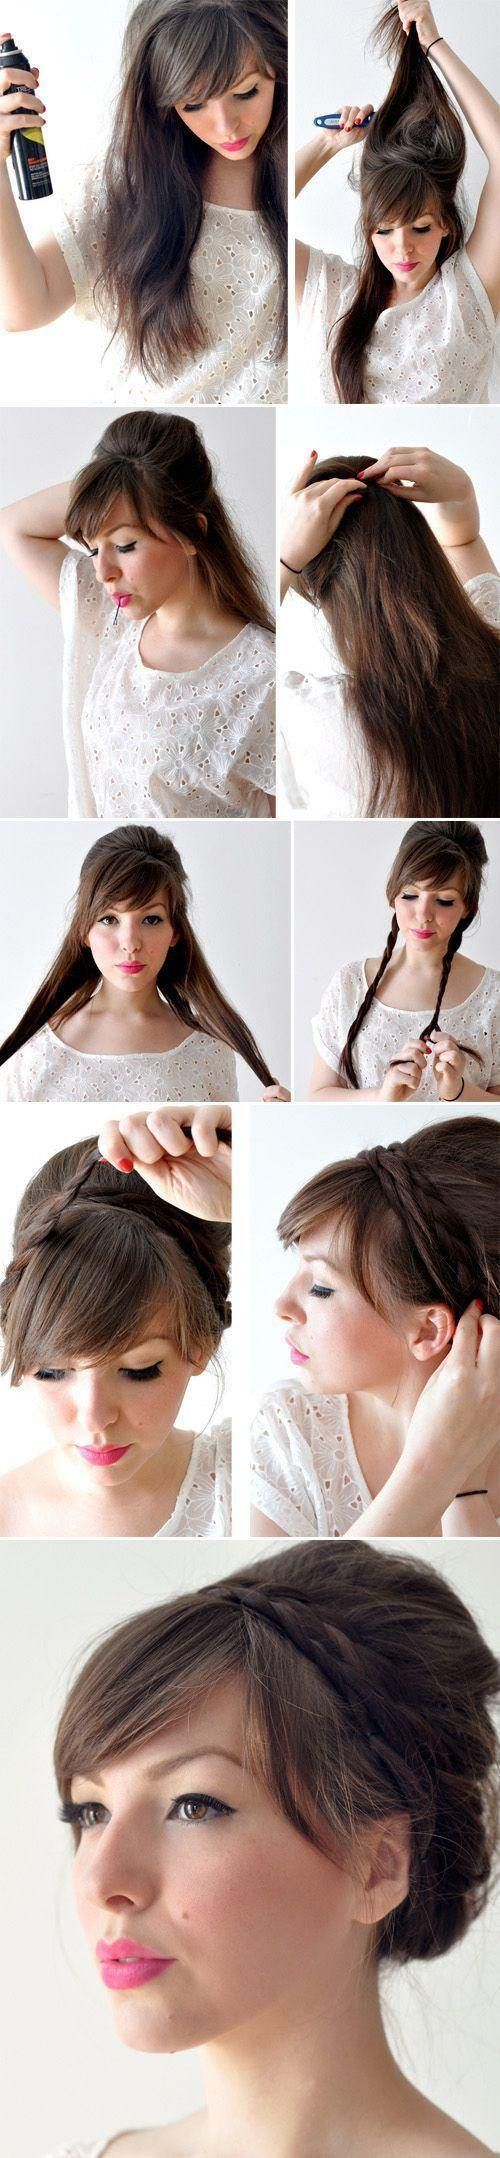 updo / Long Curly Hair Styles on imgfave